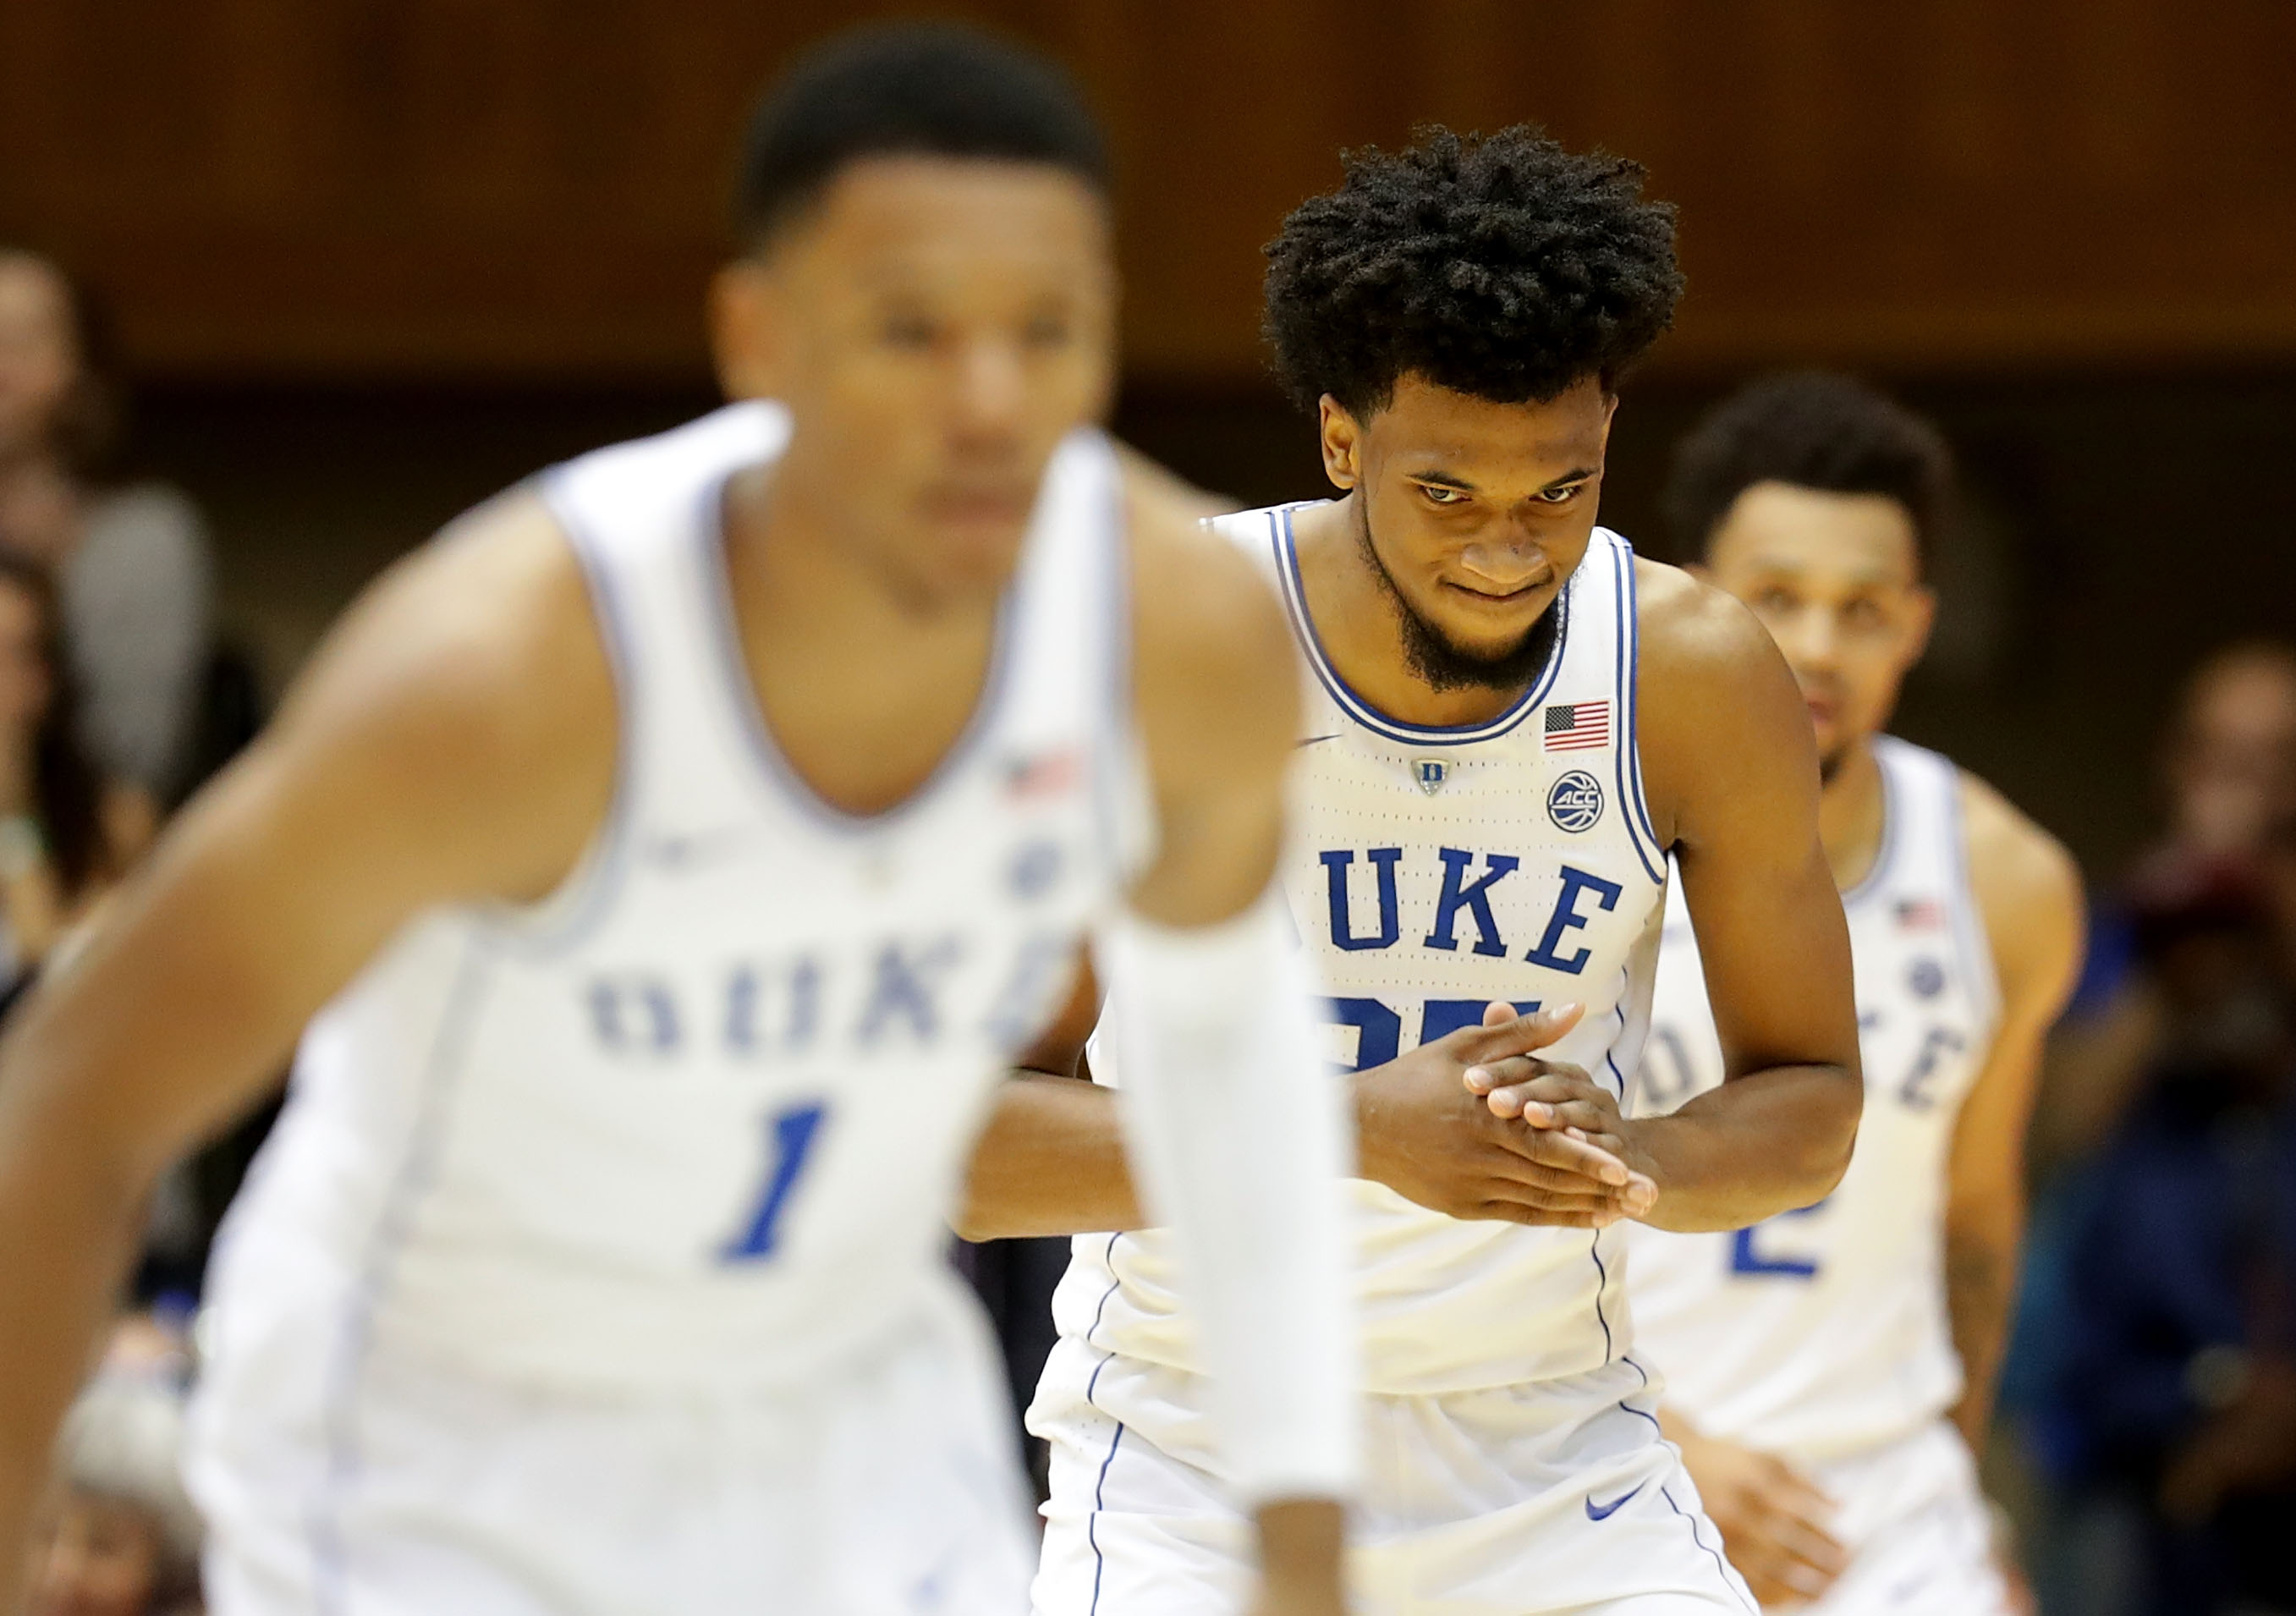 Unranked Boston College upsets top-ranked Duke, 89-84